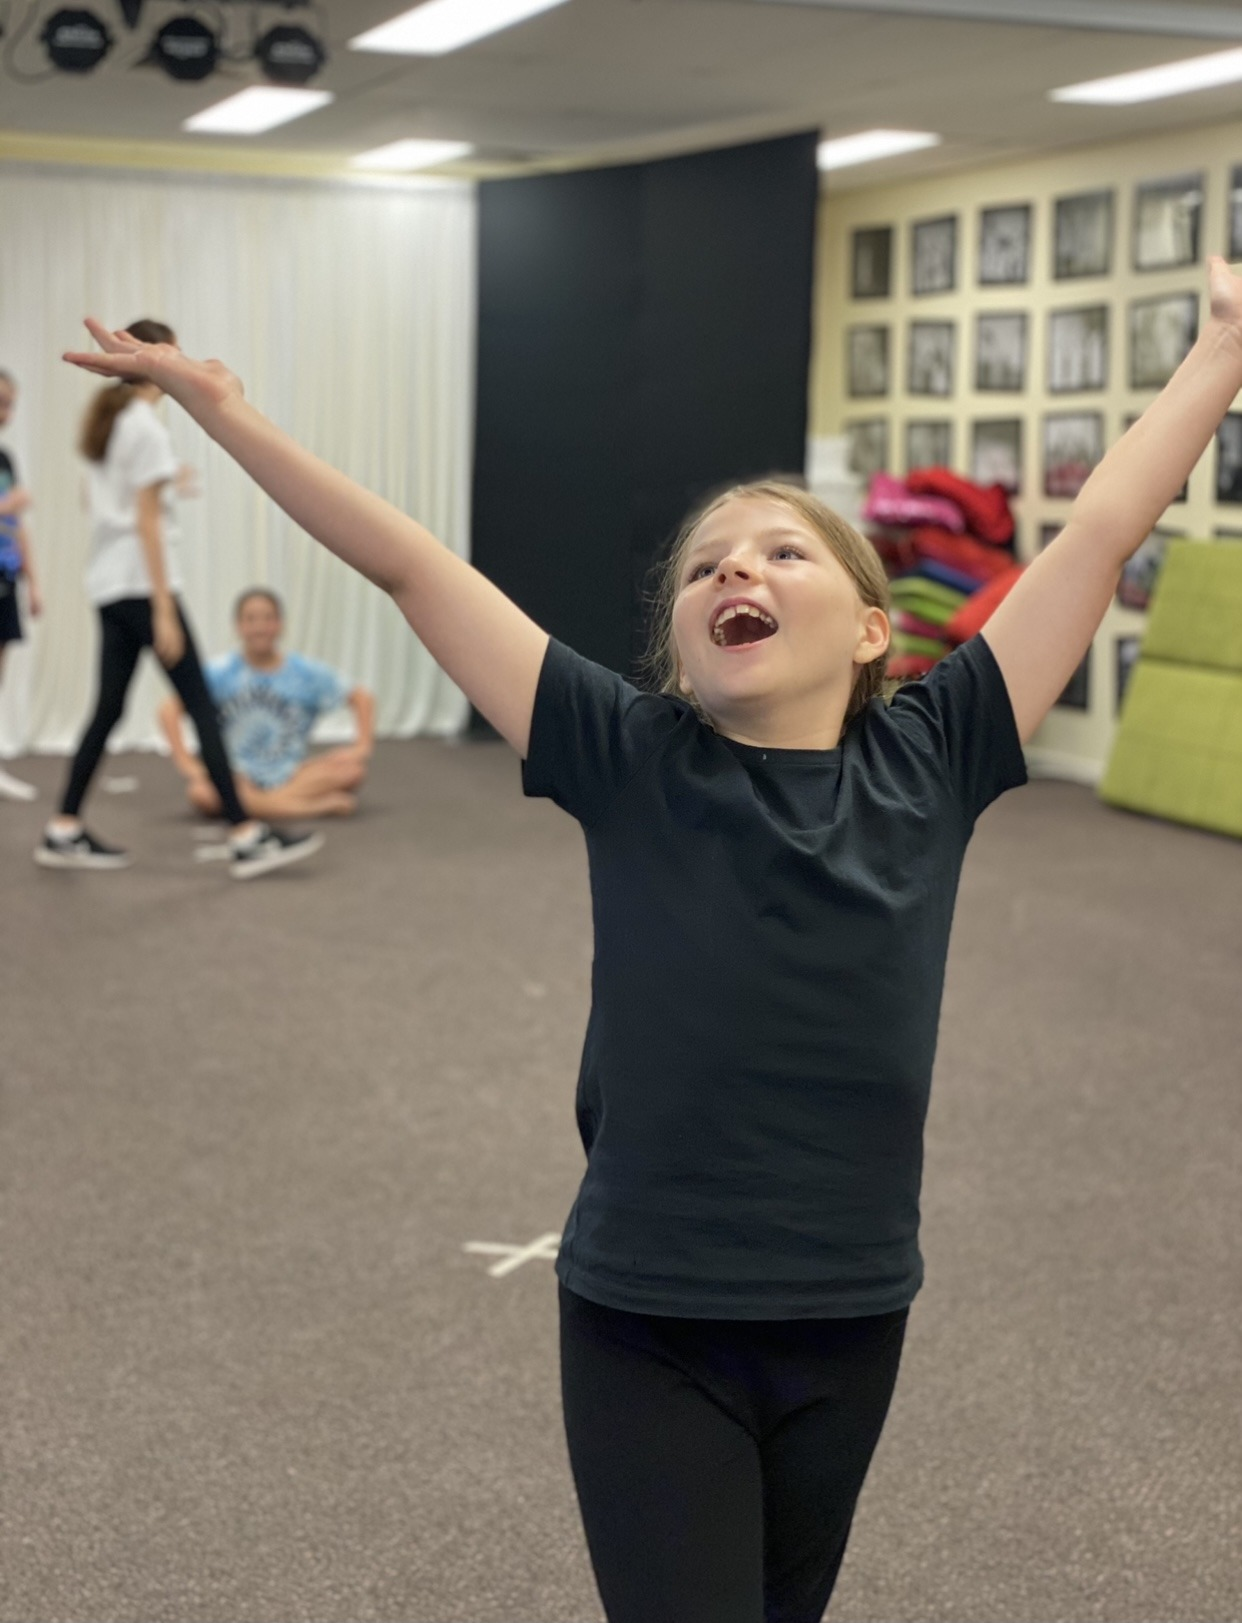 Drama Classes at Brisbane Acting and Drama promote self-confidence